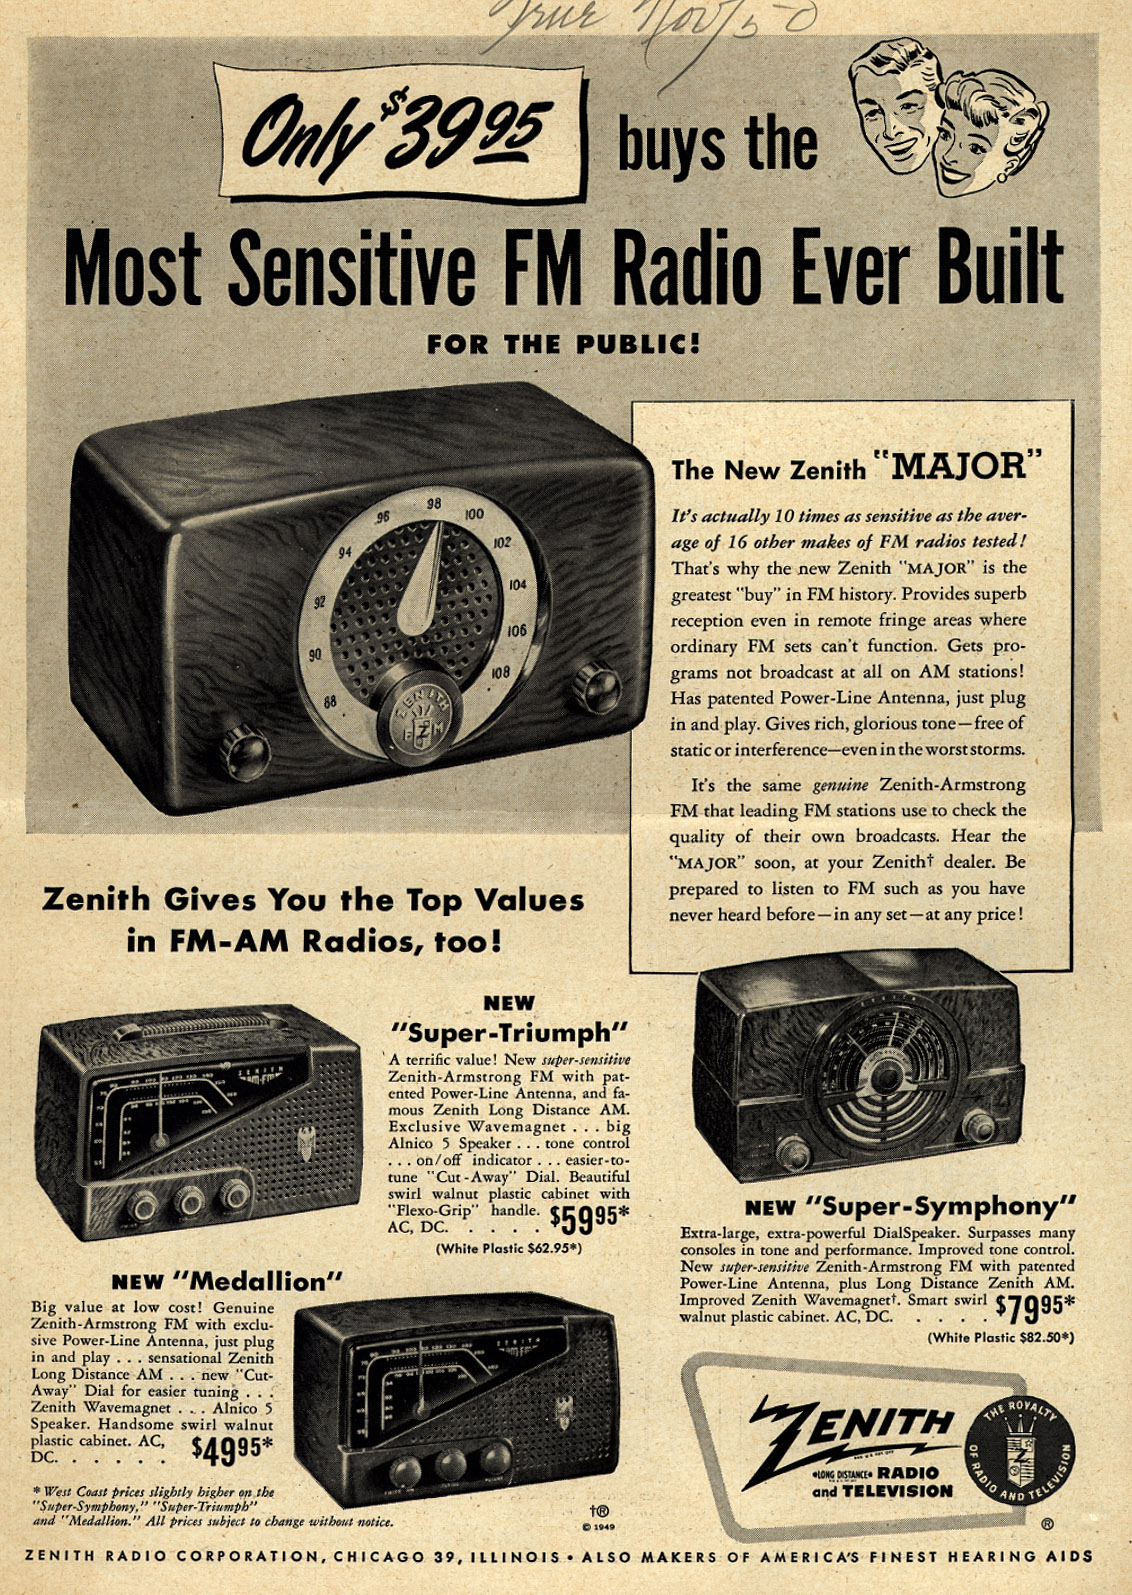 Only_39.95_buys_the_Most_Sensitive_FM_Radio_Ever_Built_For_The_Public